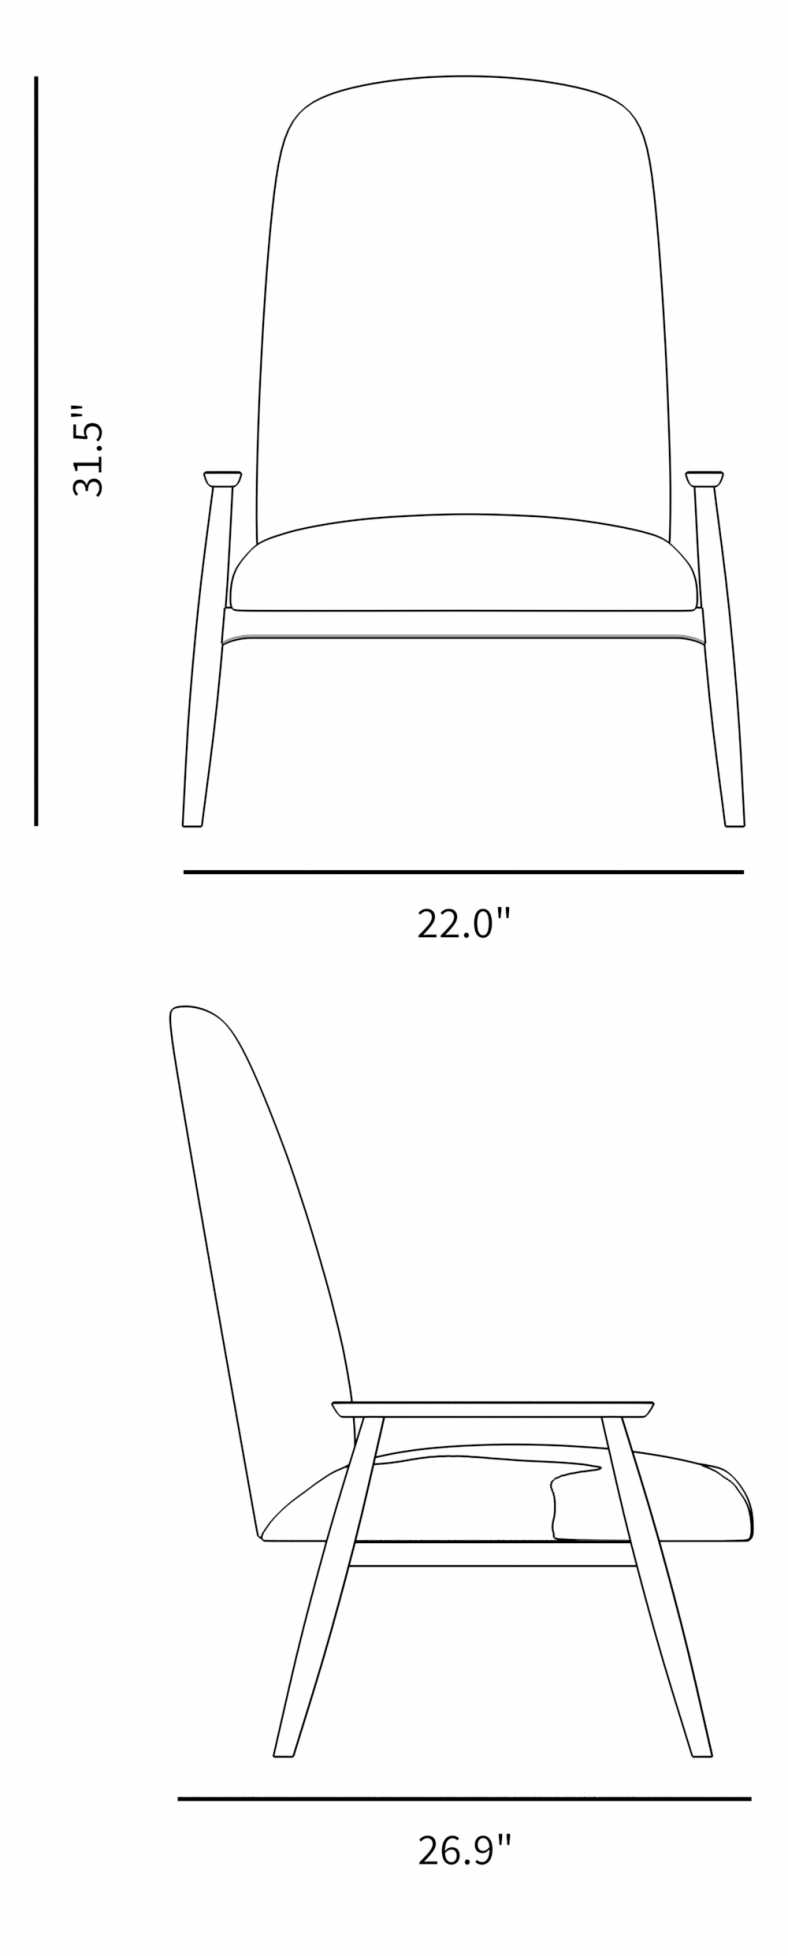 Dimensions for Hanna Lounge Chair